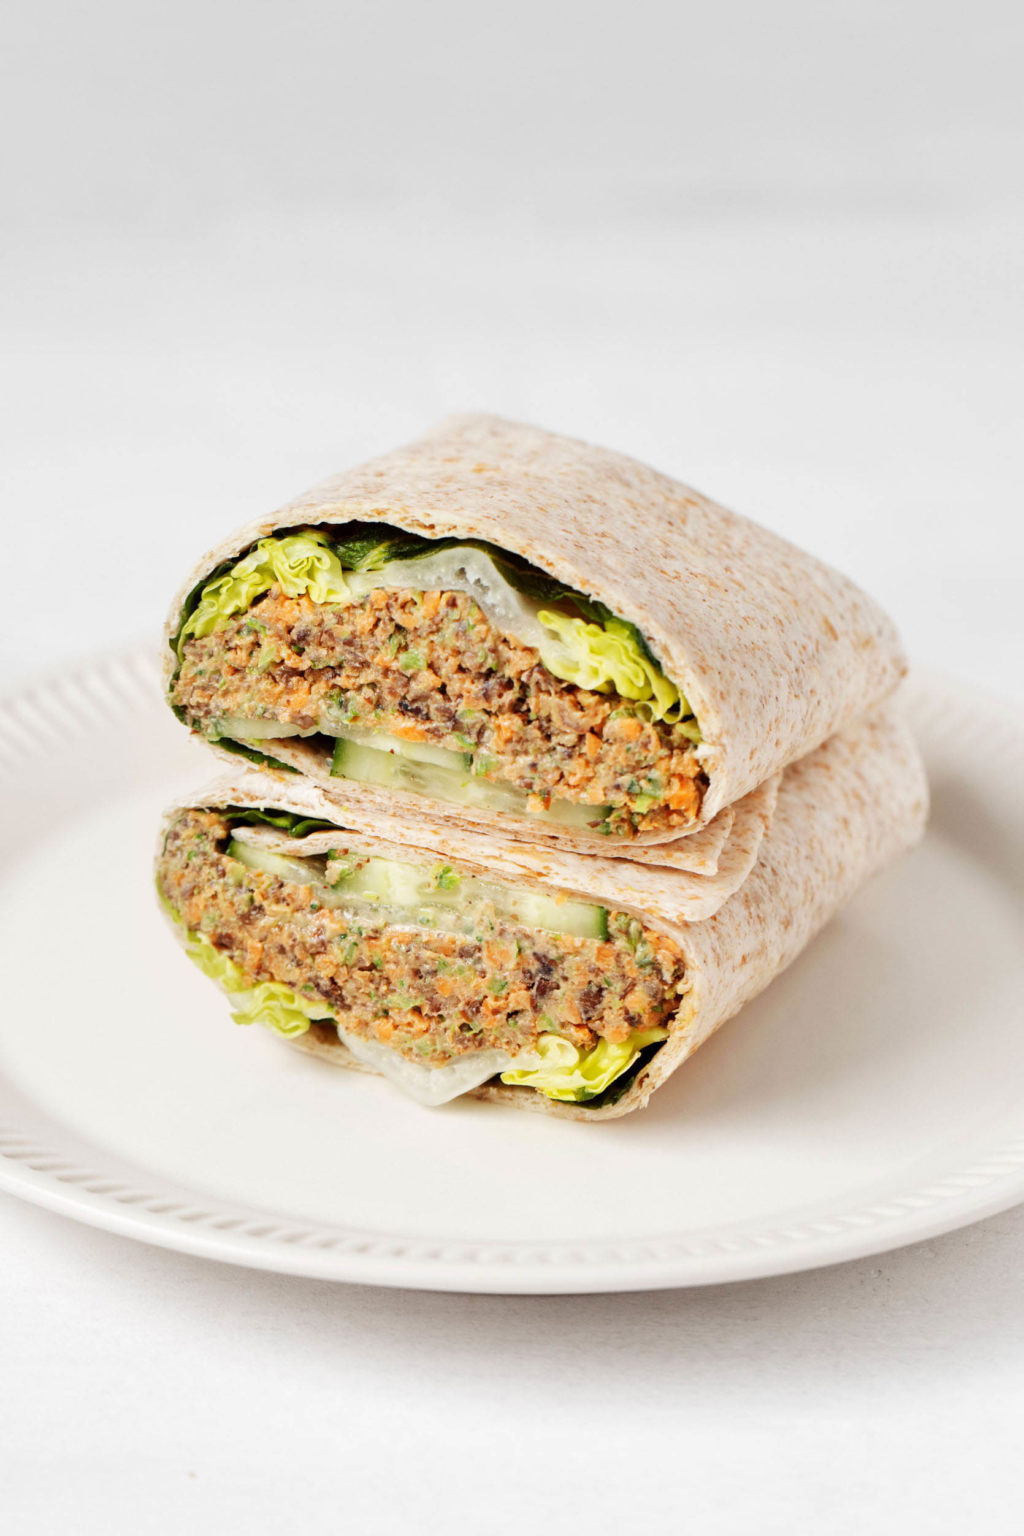 A cream colored, rimmed serving plate holds a whole grain wrap that has been sliced in half crosswise. It's filled with vegetables and legumes.